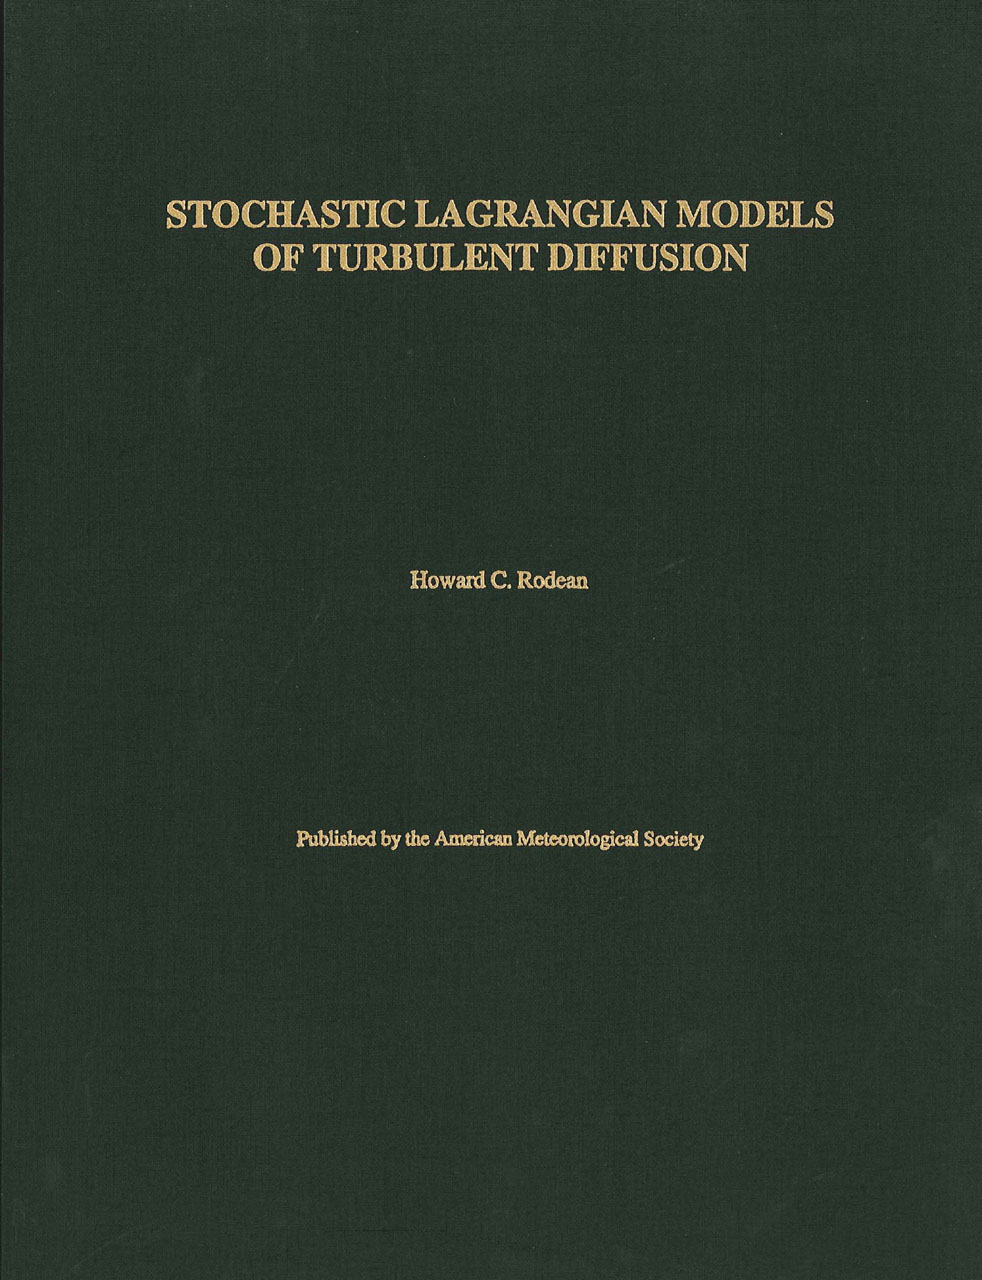 Stochastic Lagrangian Models of Turbulent Diffusion